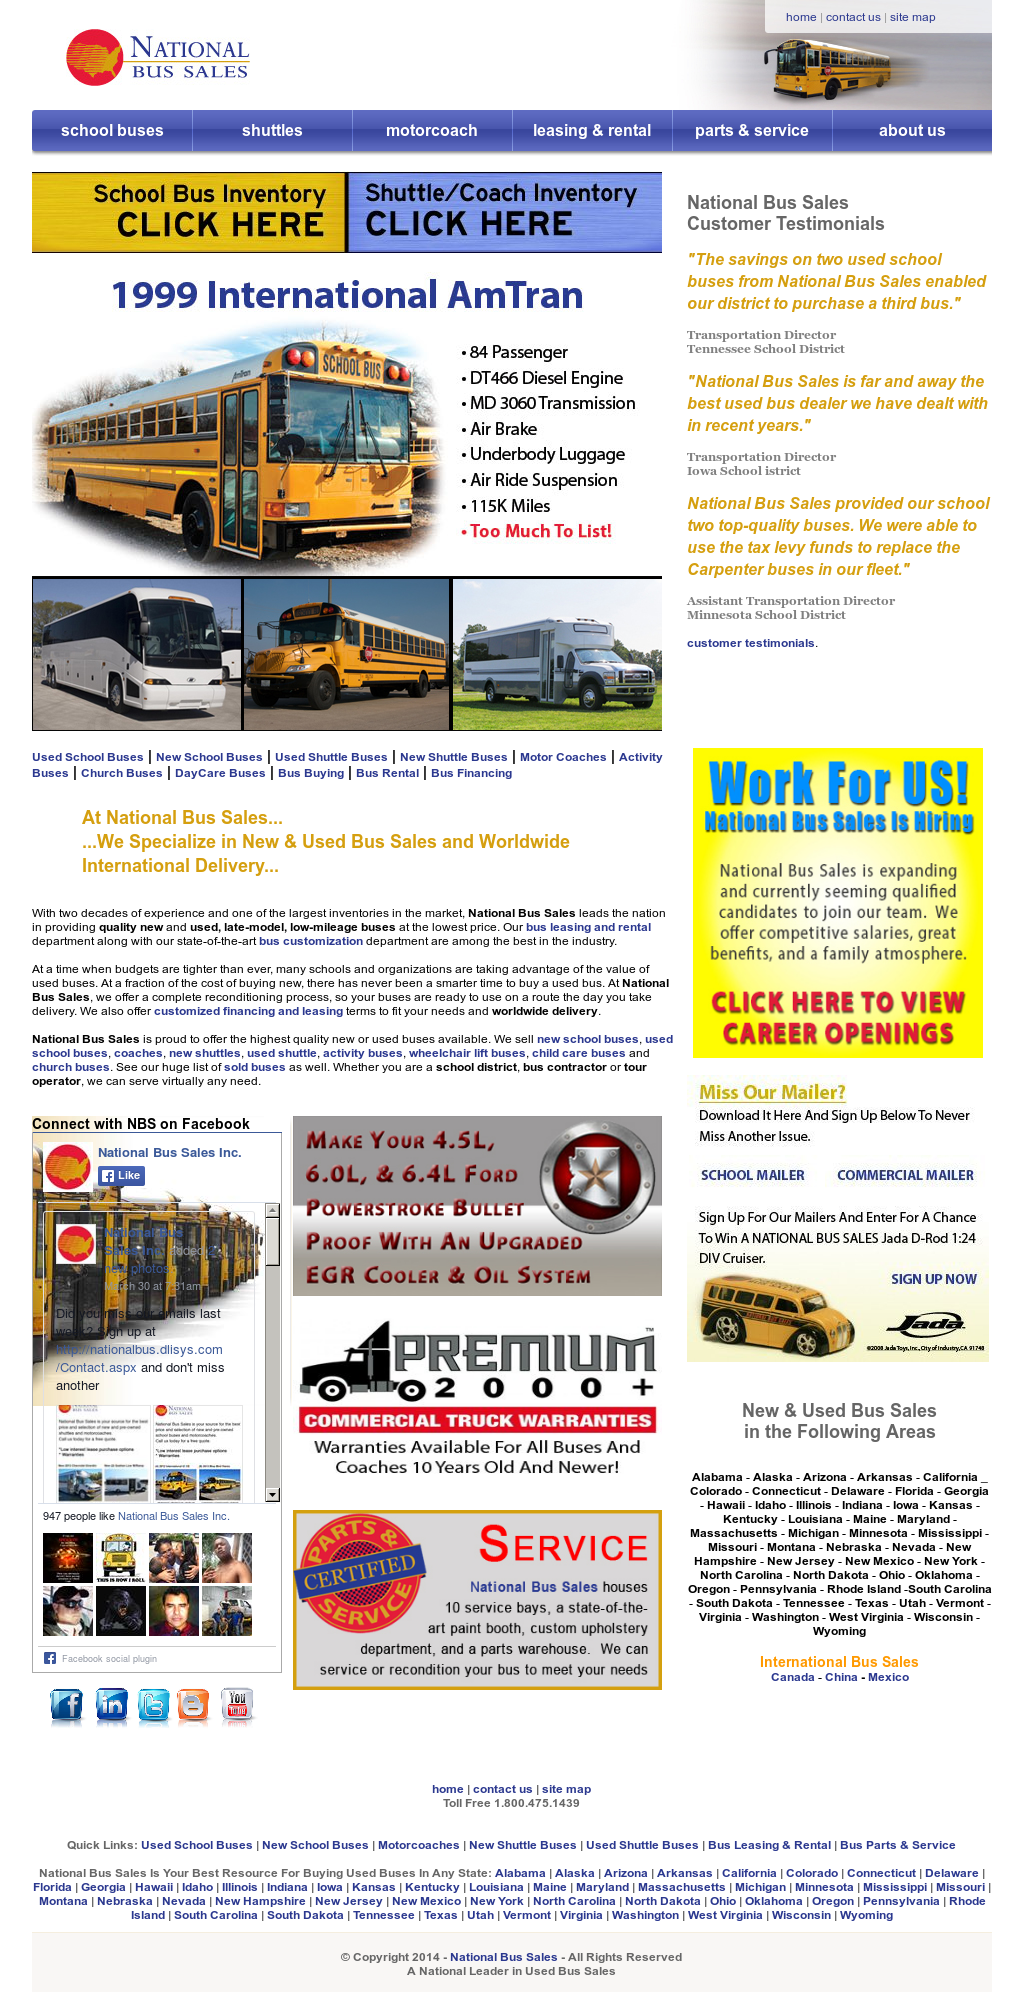 National Bus Sales Competitors, Revenue and Employees - Owler